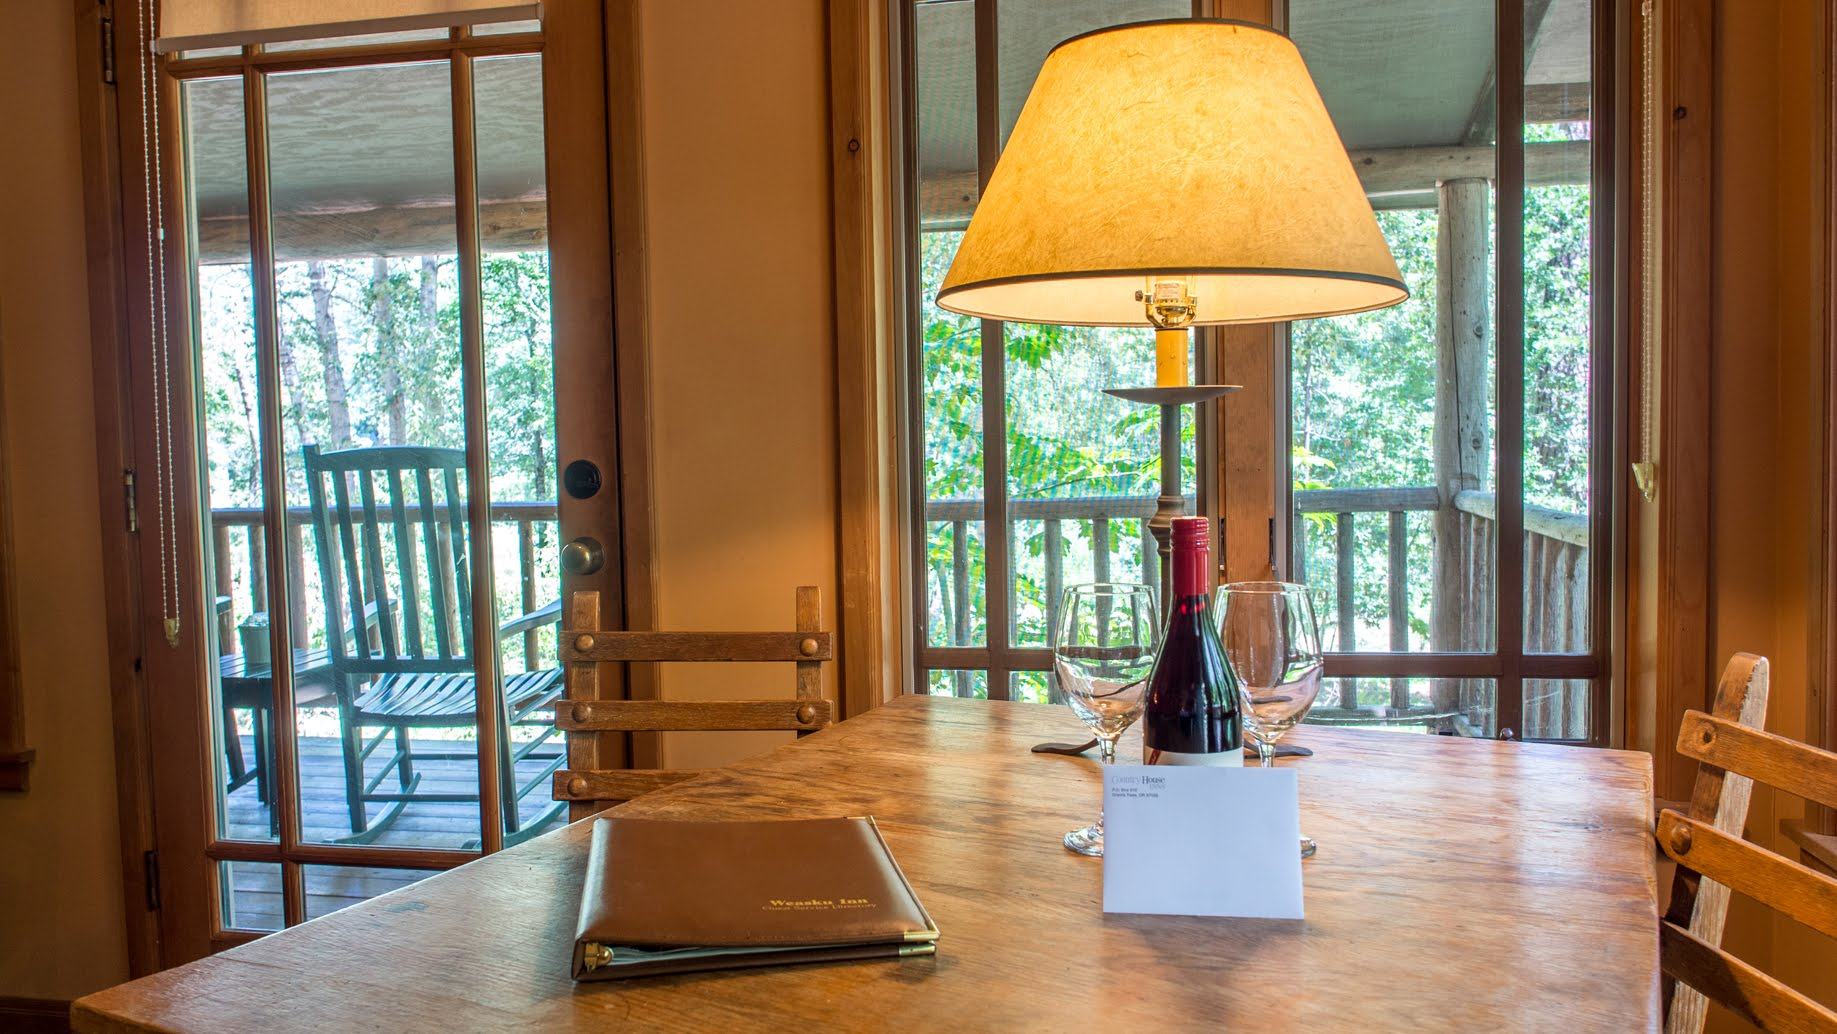 The Discover Oregon Wine tour includes tasting passes, wine glasses and more